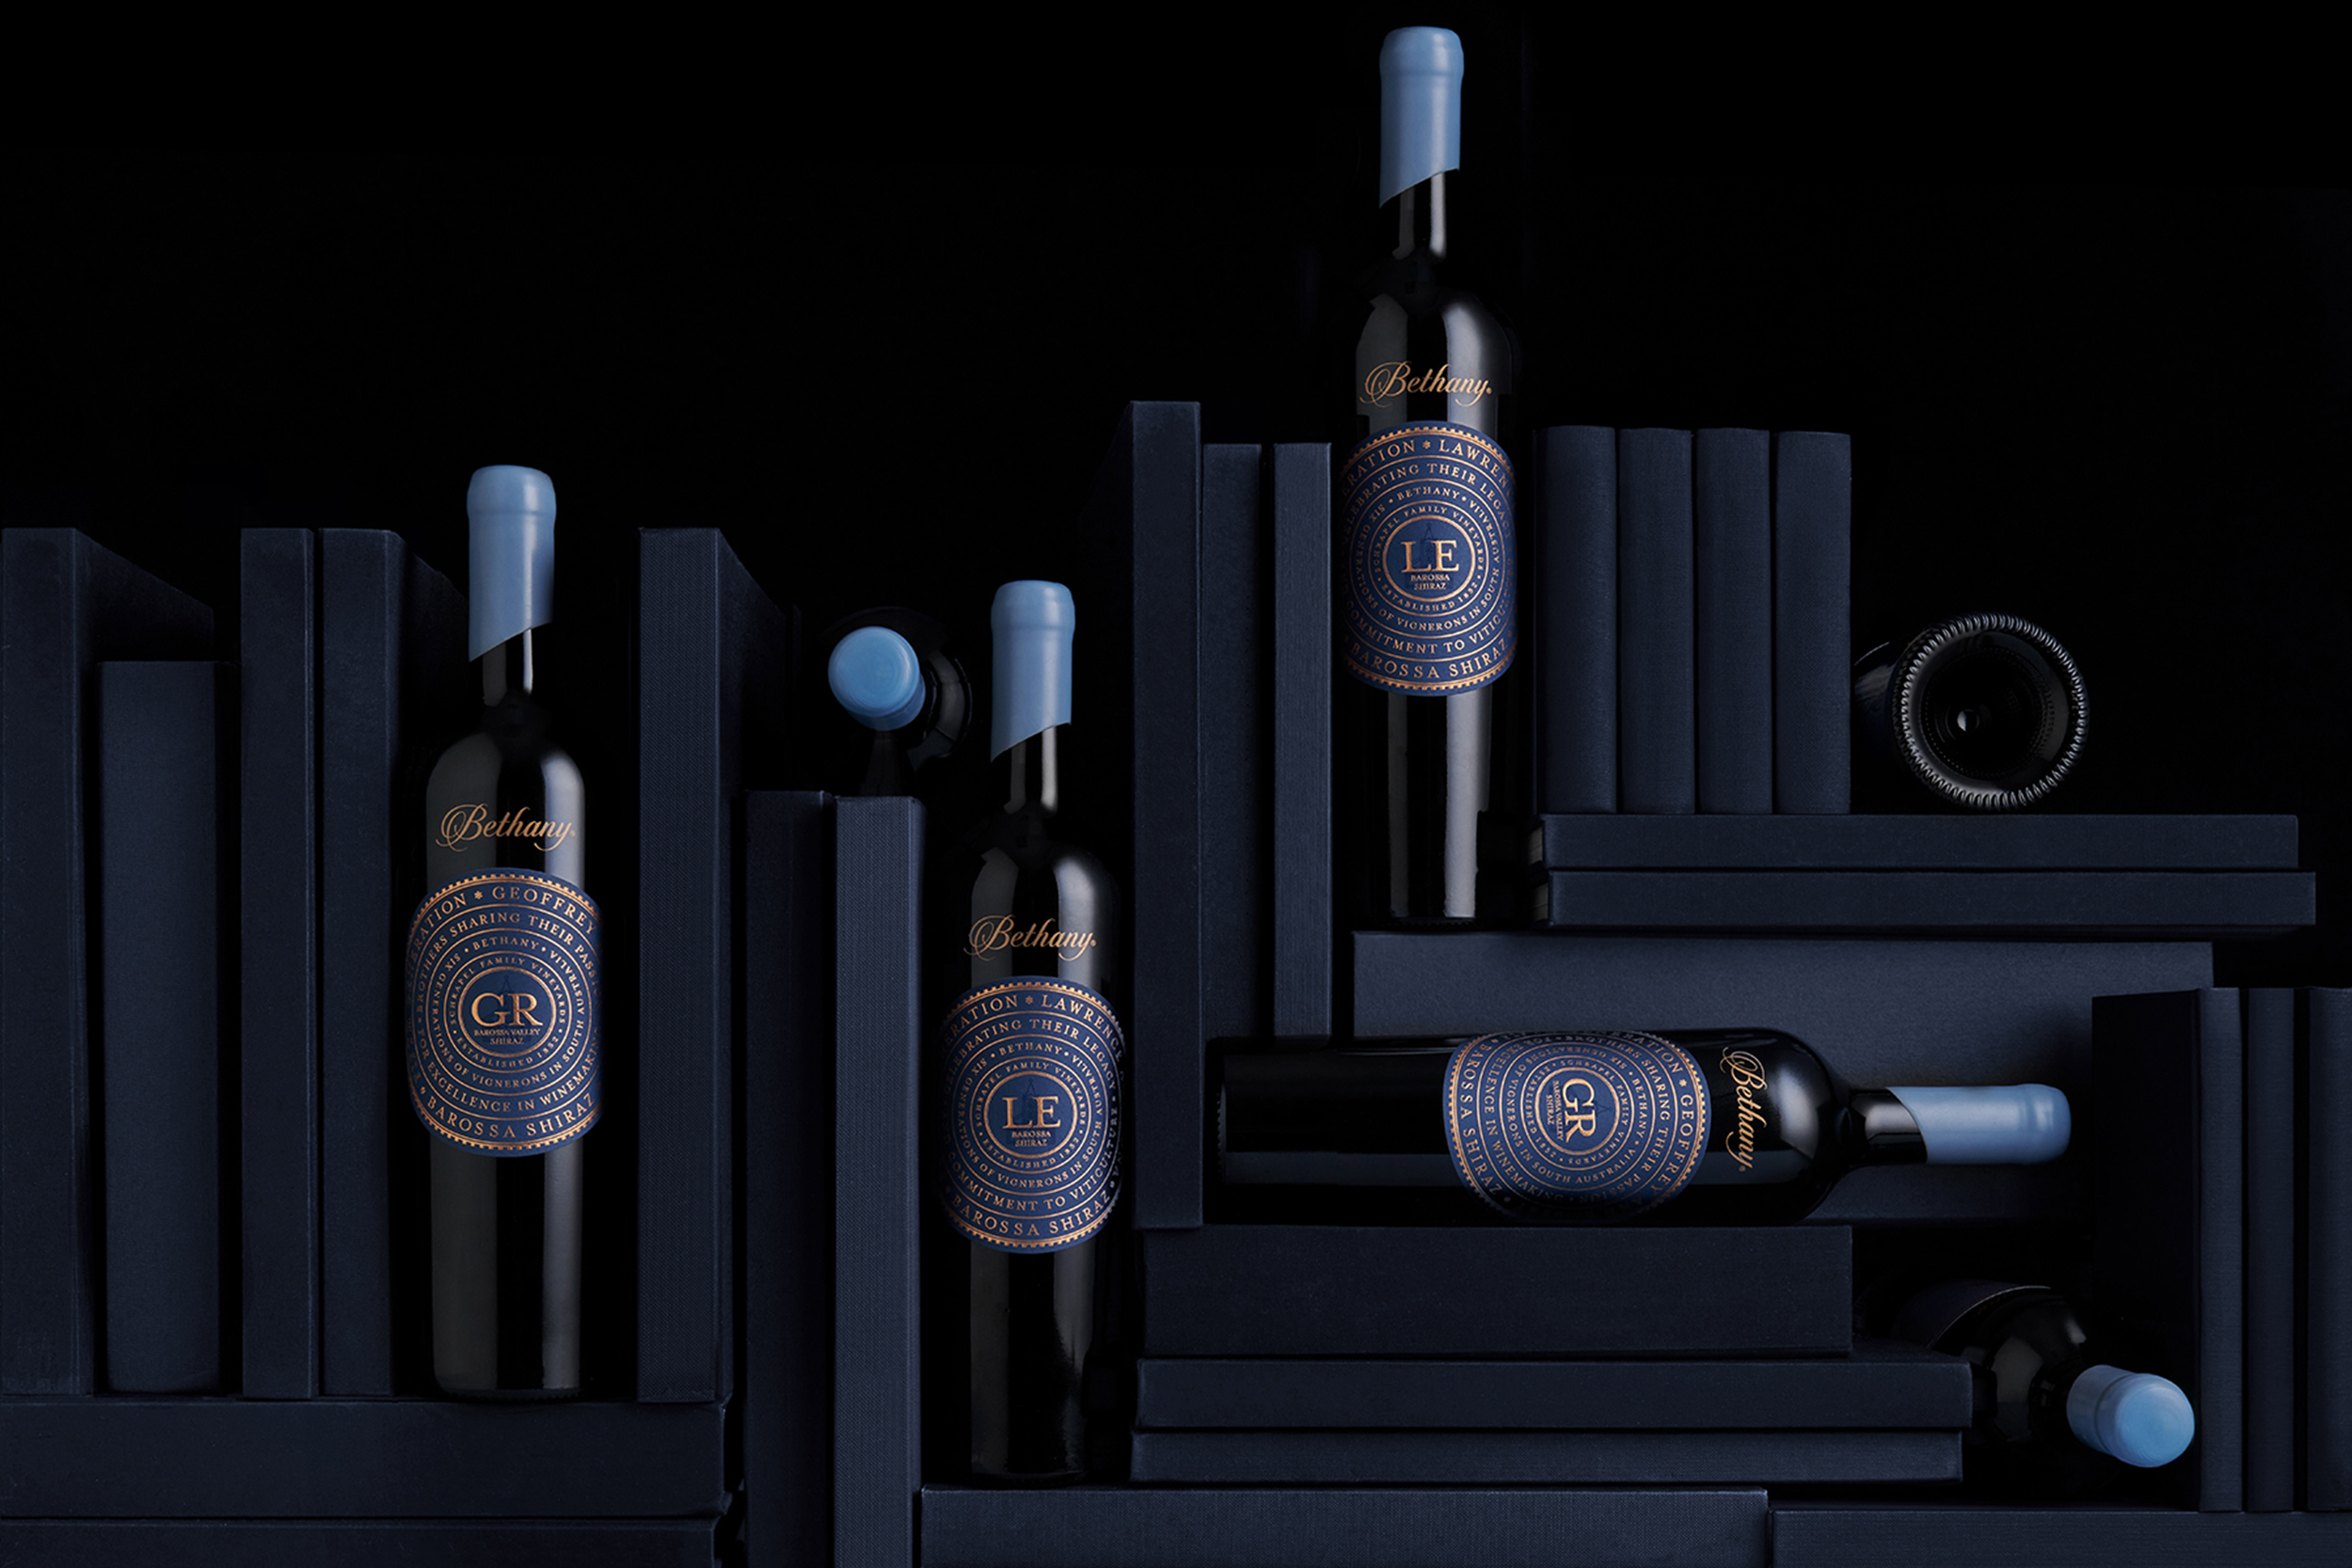 Harcus Design Creates Chapters of Bethany Wines Packaging Design